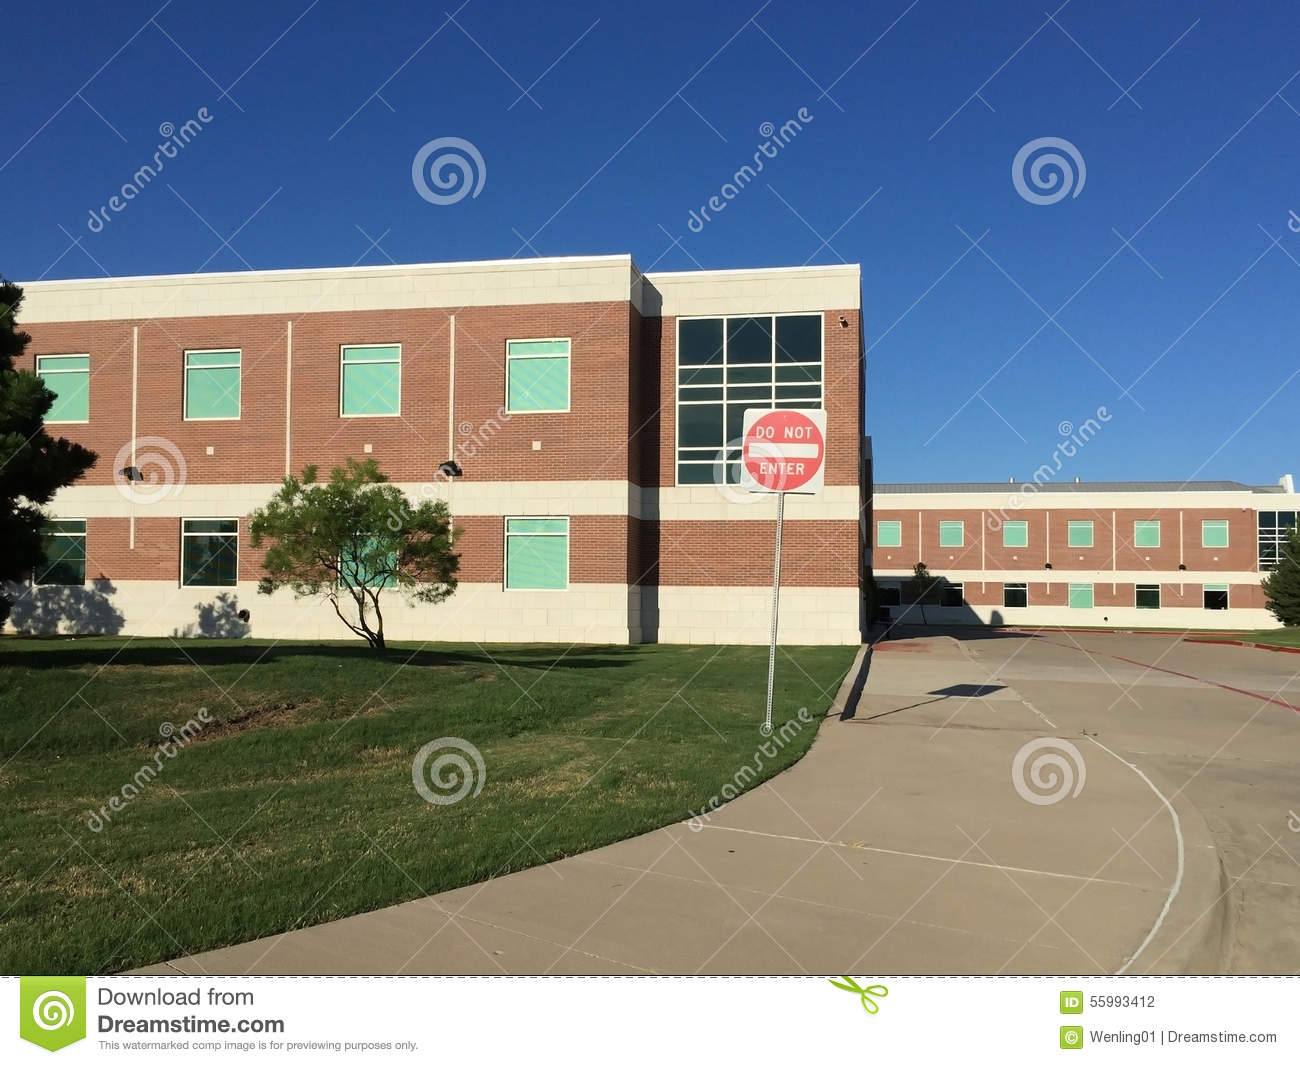 Nice high school building stock photo image 55993412 for Nice building images